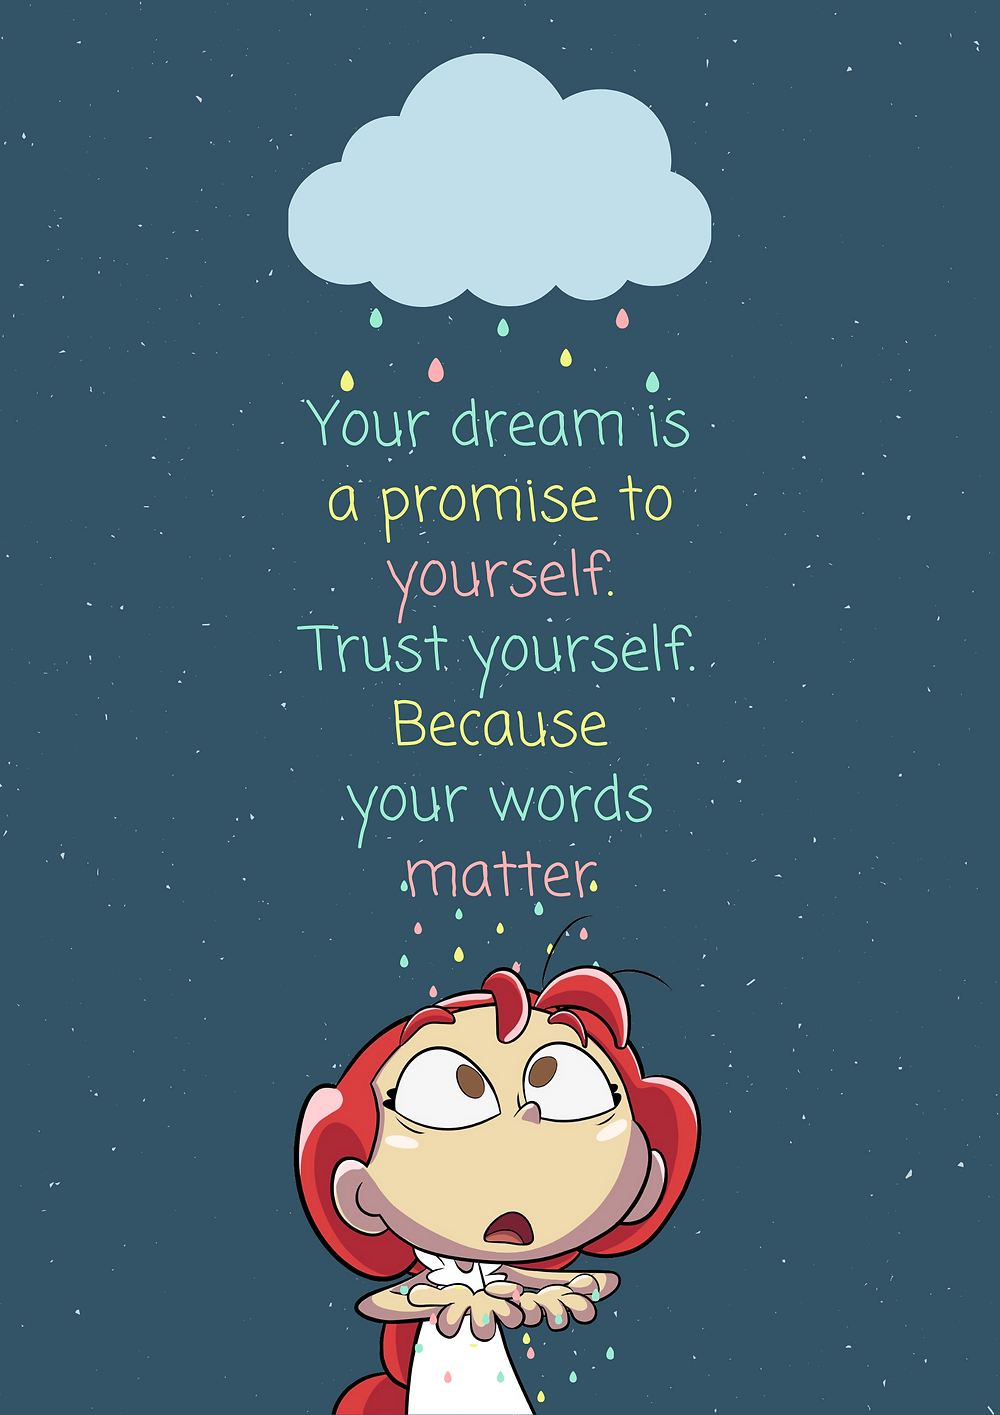 Dream Big, Believe in Yourself.  www.imaworld.com/downloadables